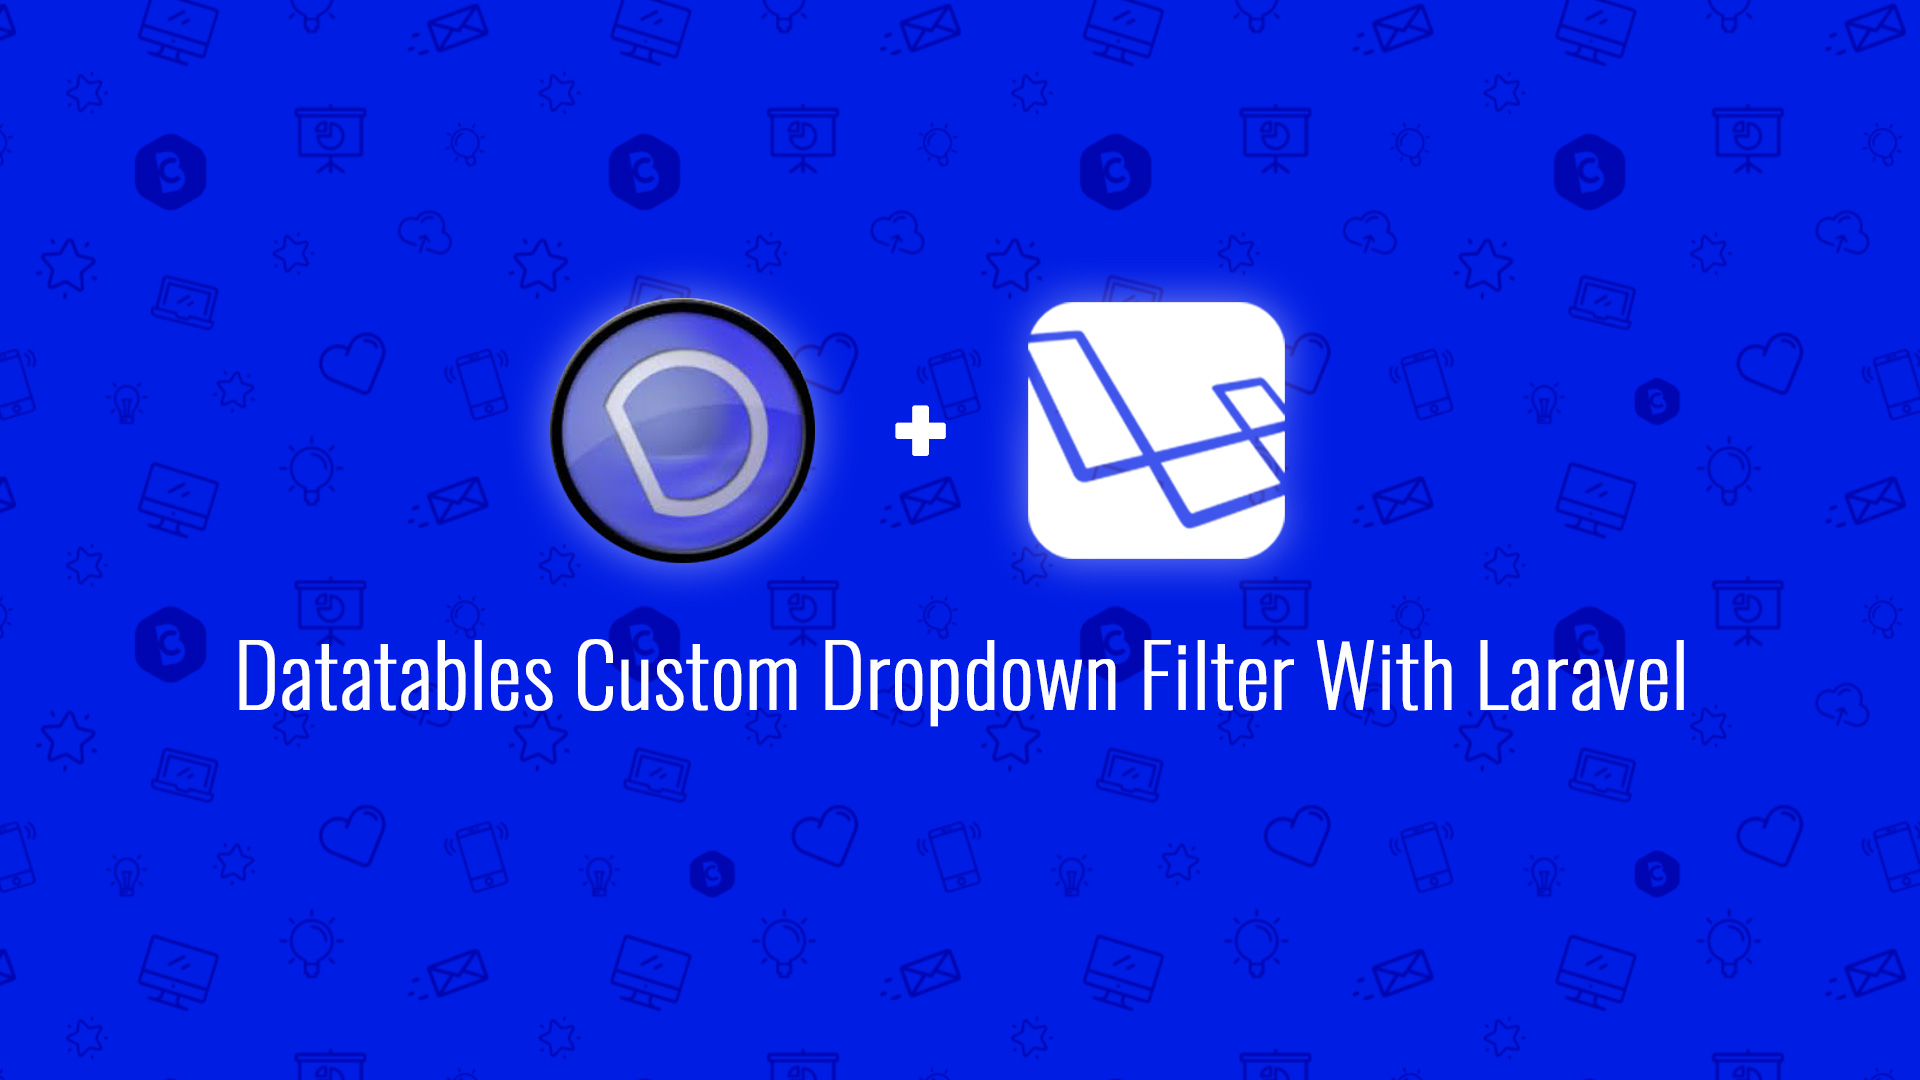 Create Custom Dropdown Server Side Filter in Datatables - Code Briefly